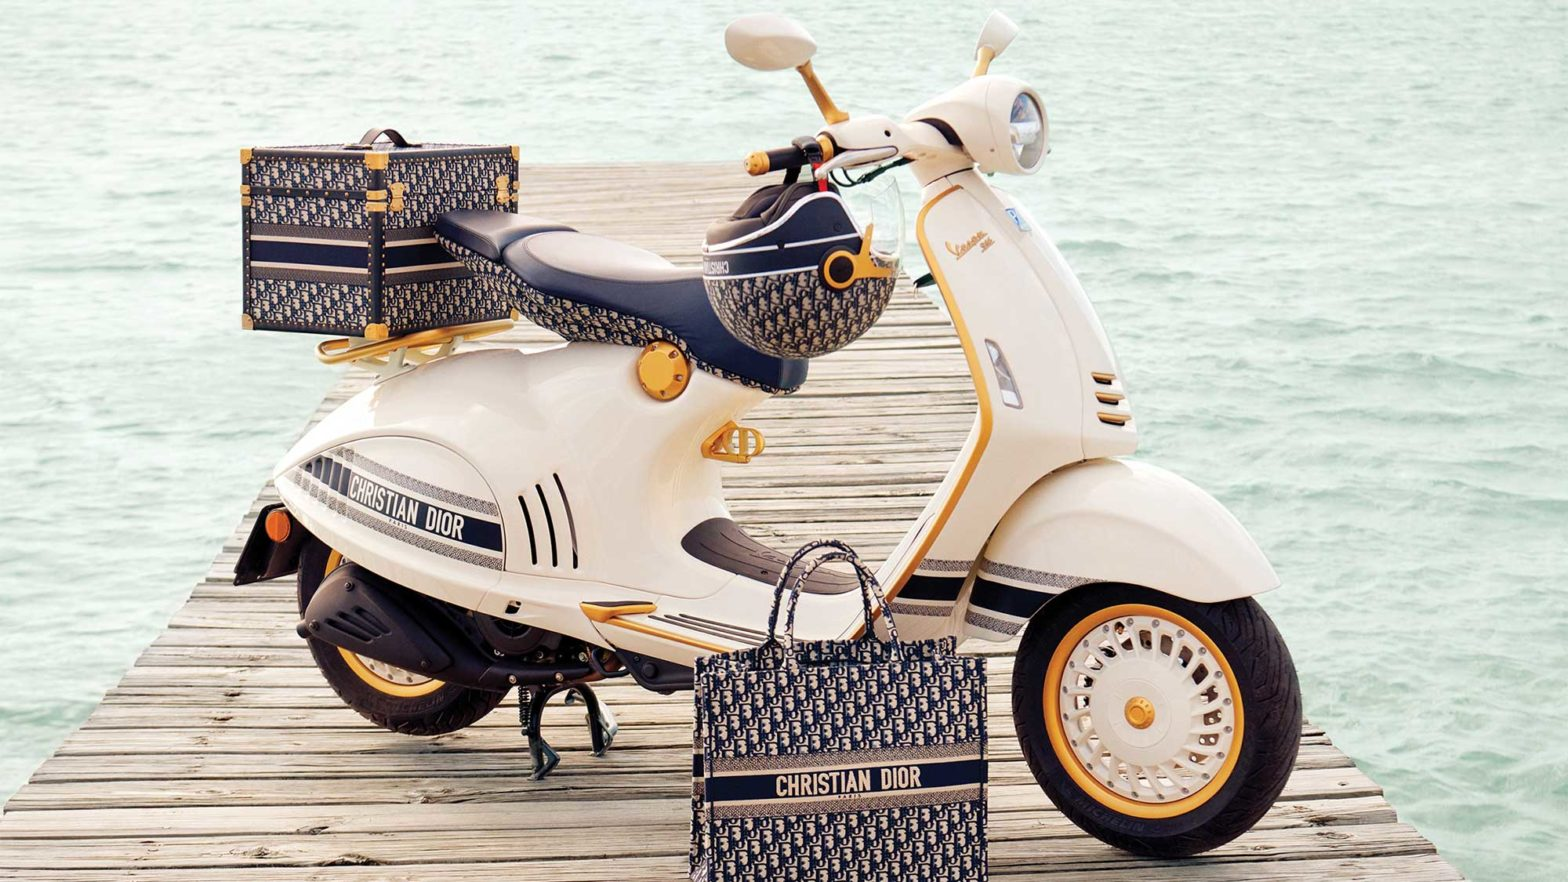 Vespa 946 Christian Dior Scooter